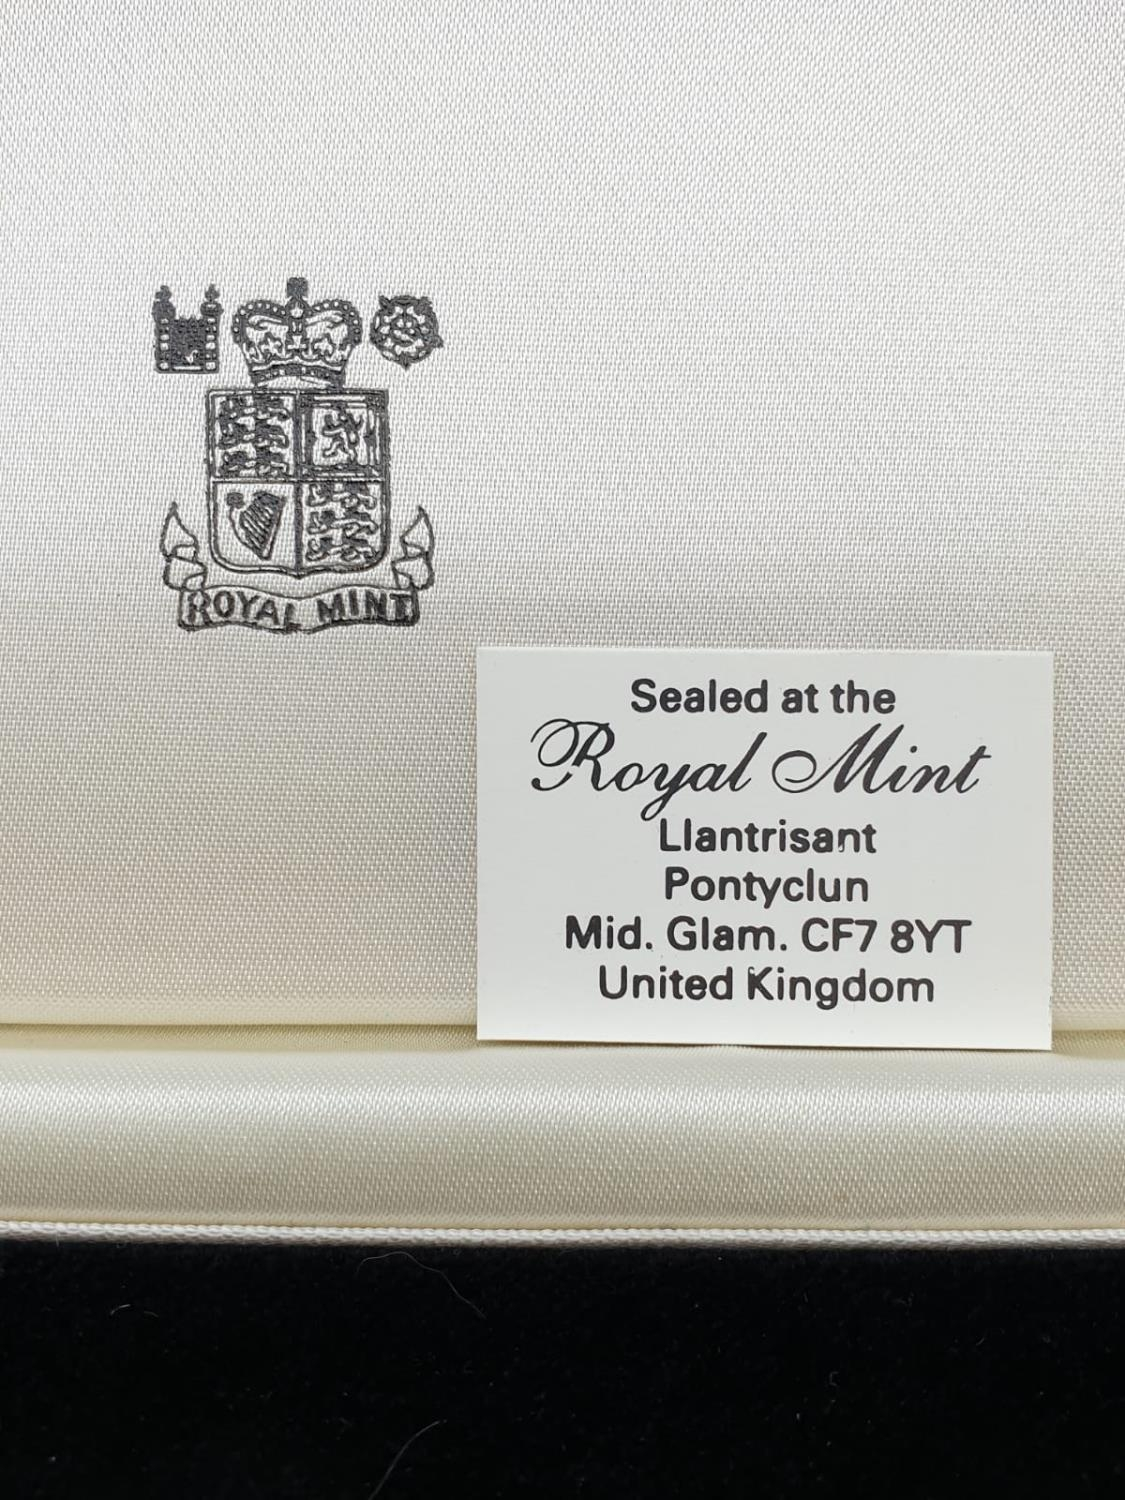 1988 UK GOLD PROOF 3 COIN COLLECTION TO INCLUDE A DOUBLE SOVEREIGN, A SOVEREIGN AND A HALF - Image 5 of 6